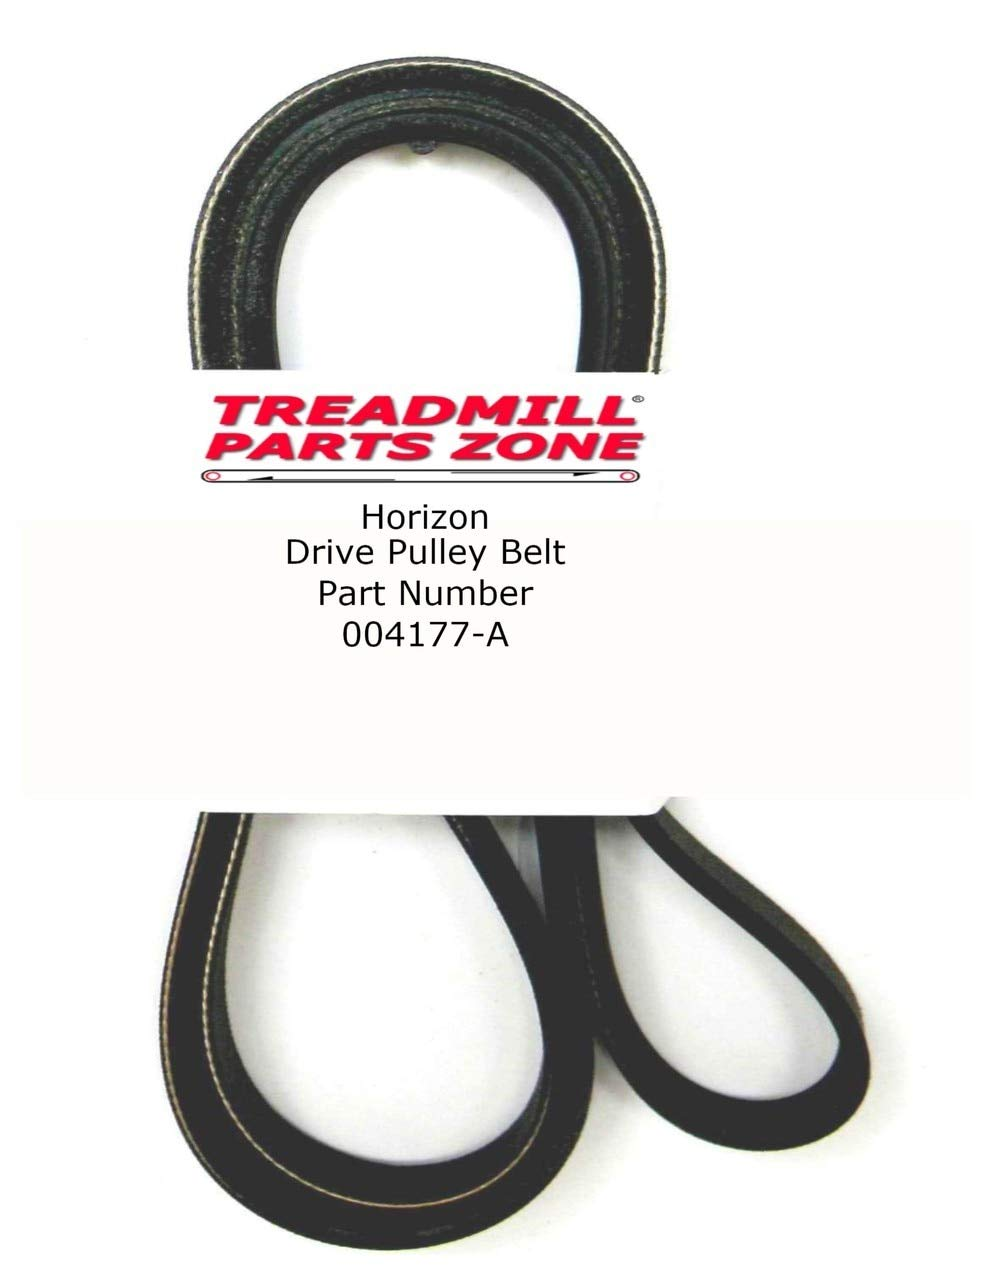 TreadmillPartsZone Replacement Horizon Elliptical Model 30701 Sears Free Spirit Drive Pulley Belt Part Number 004177-A